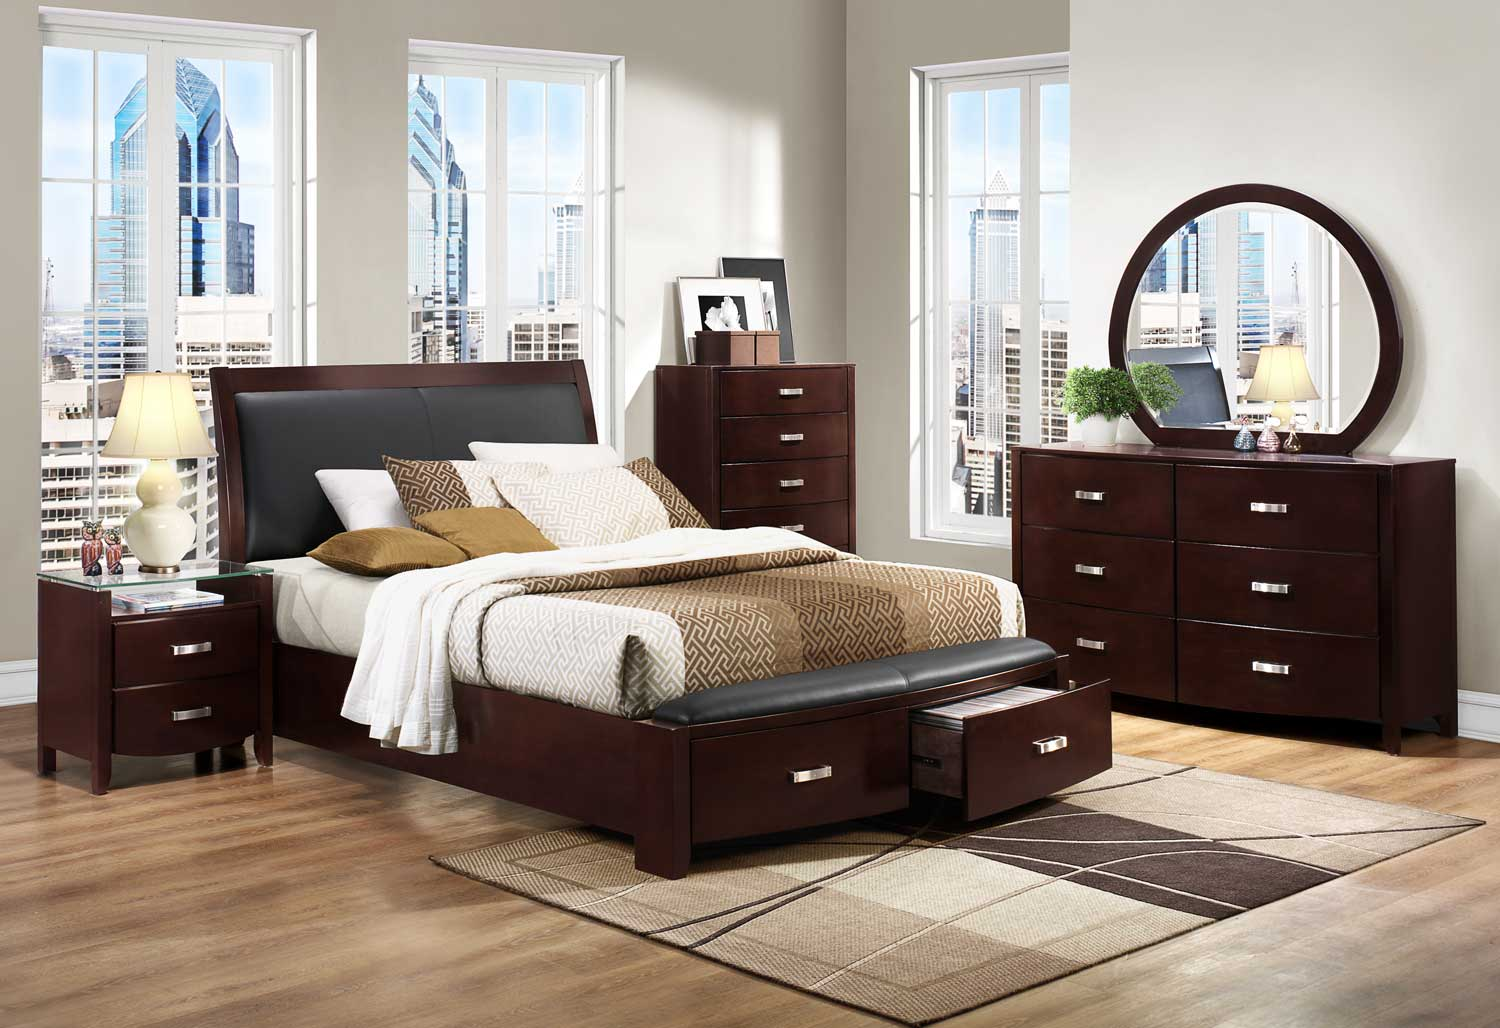 Homelegance Lyric Platform Bedroom Set - Dark Espresso B1737NC-BED ...